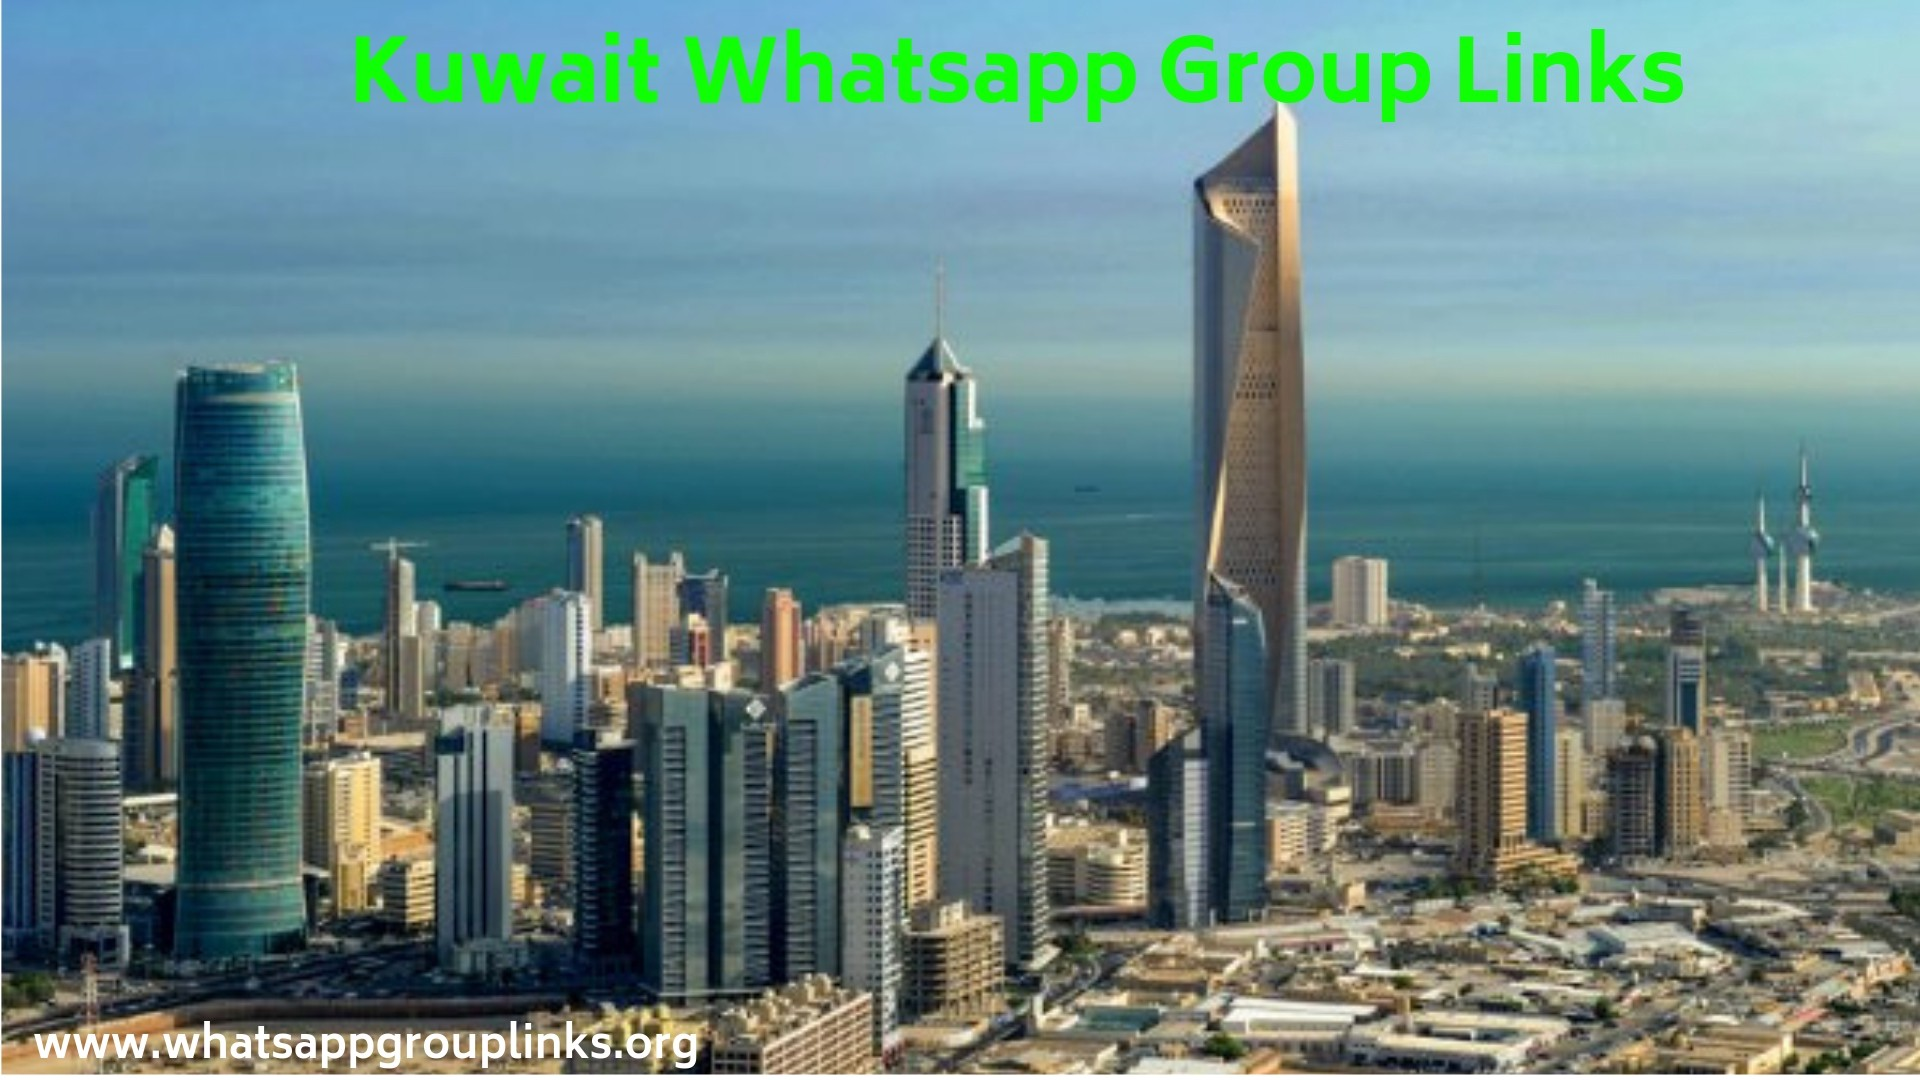 Join Kuwait Whatsapp Group Links List - Sruthan Gundeboina